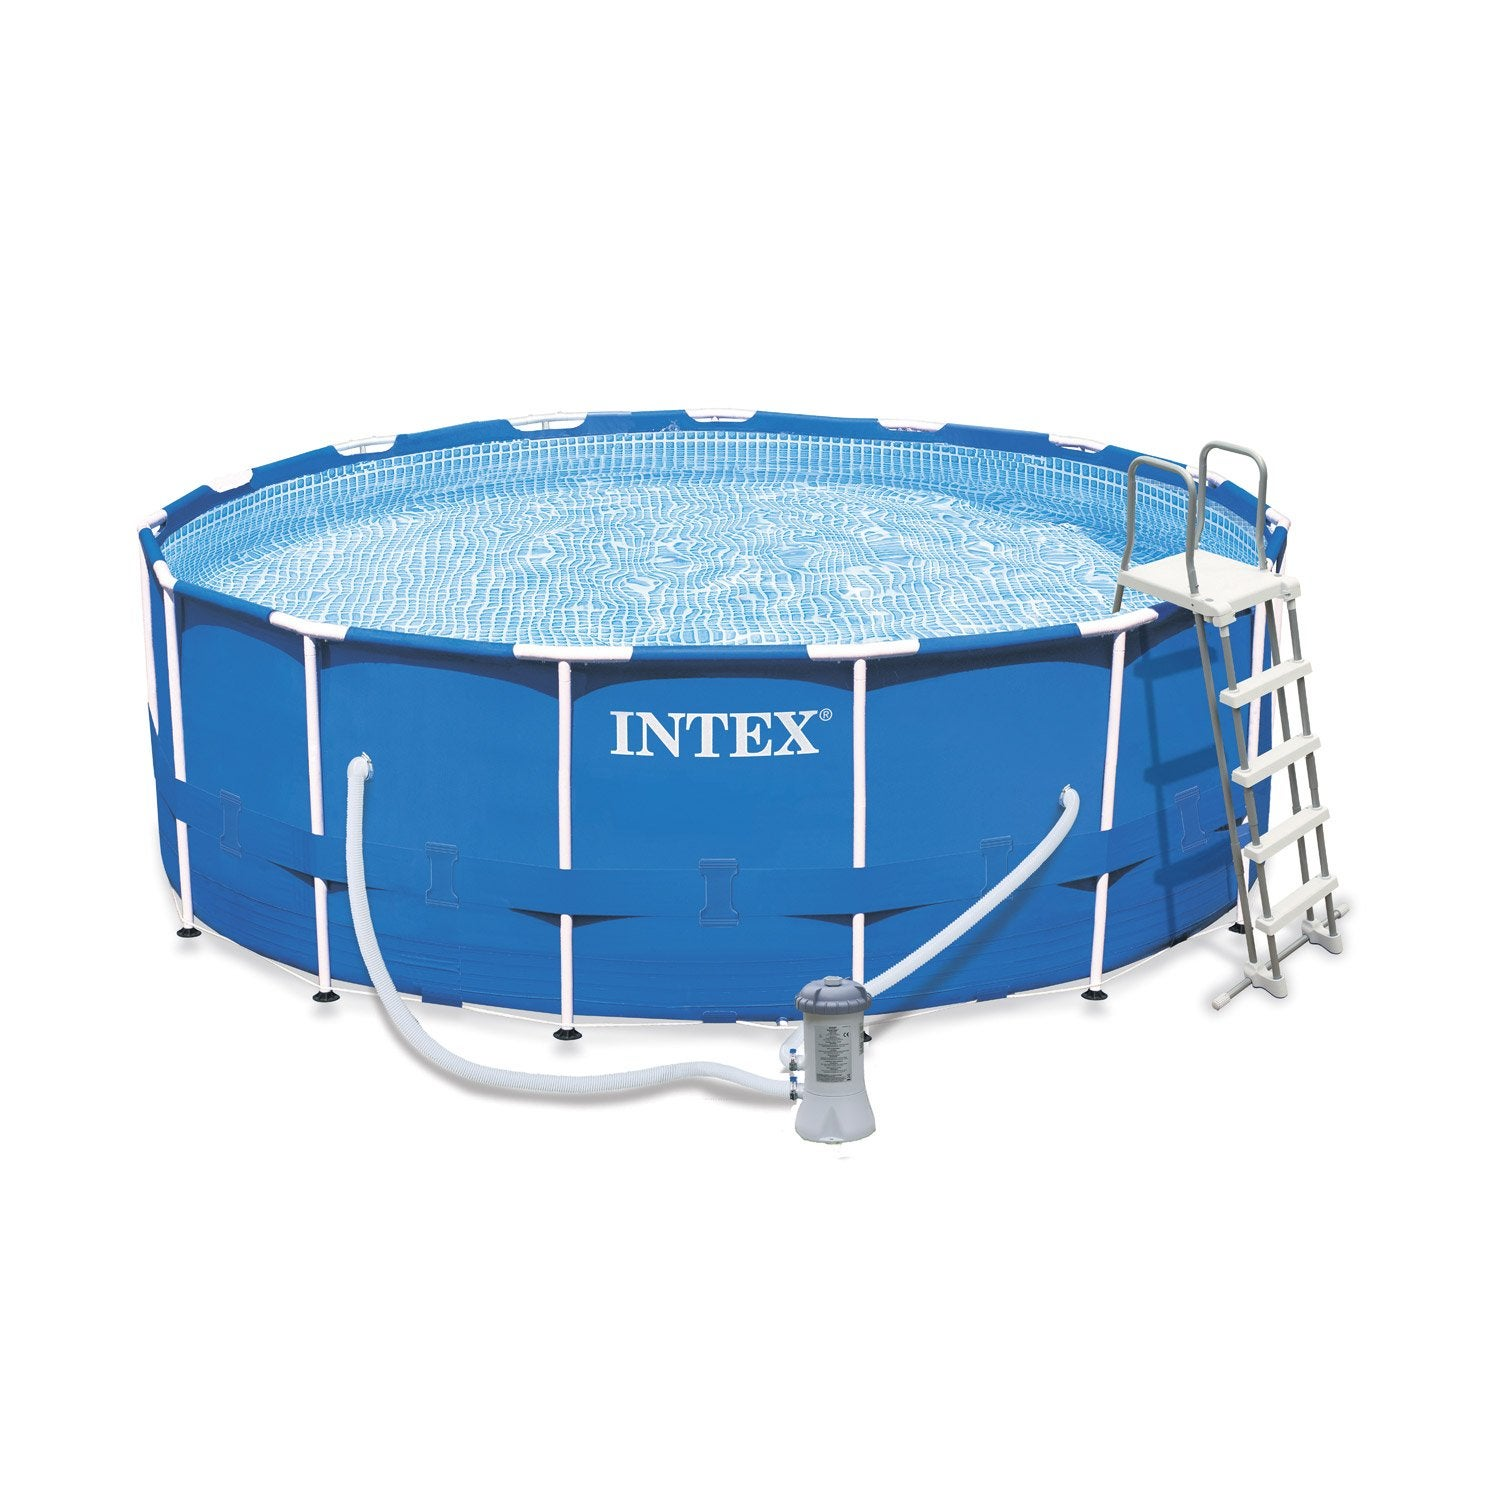 Piscine hors sol autoportante tubulaire metal frame intex for Piscine hexagonale hors sol